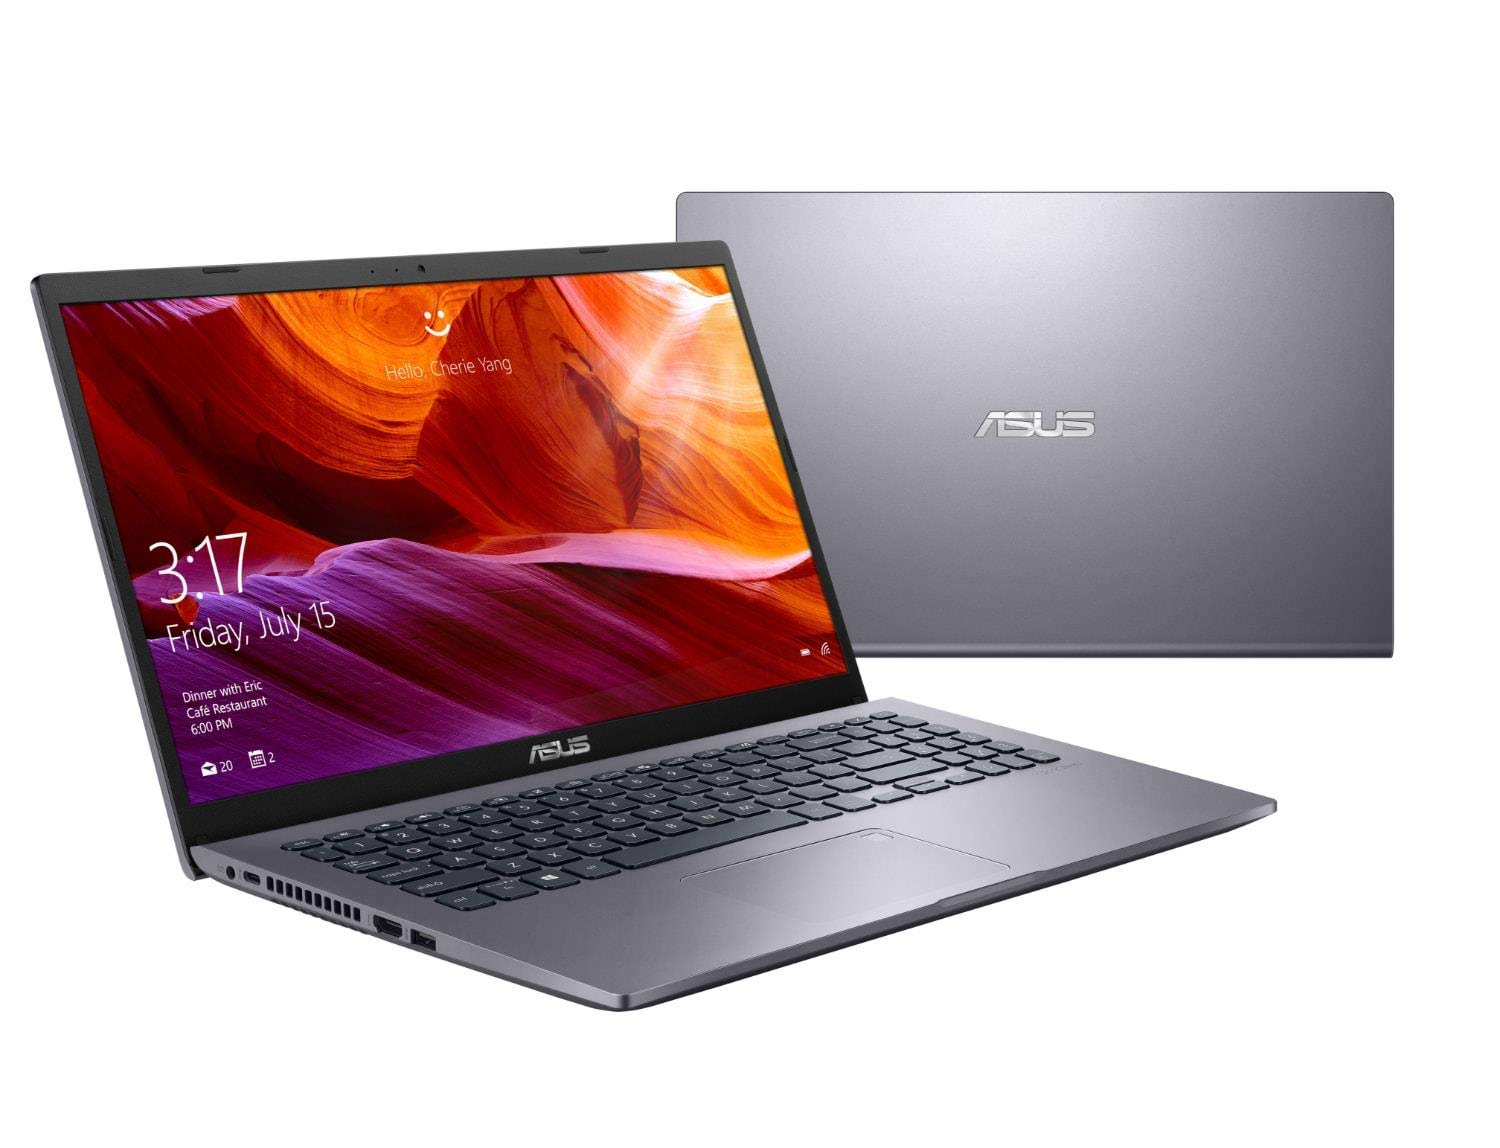 ASUS Vivobook X509UA-EJ246T Intel® Pentium® Gold 4417U 2.3 GHz, 4GB DDR4, 256GB SSD, 15.6 Full HD, Intel HD 610 Graphics, Windows 10 Home,